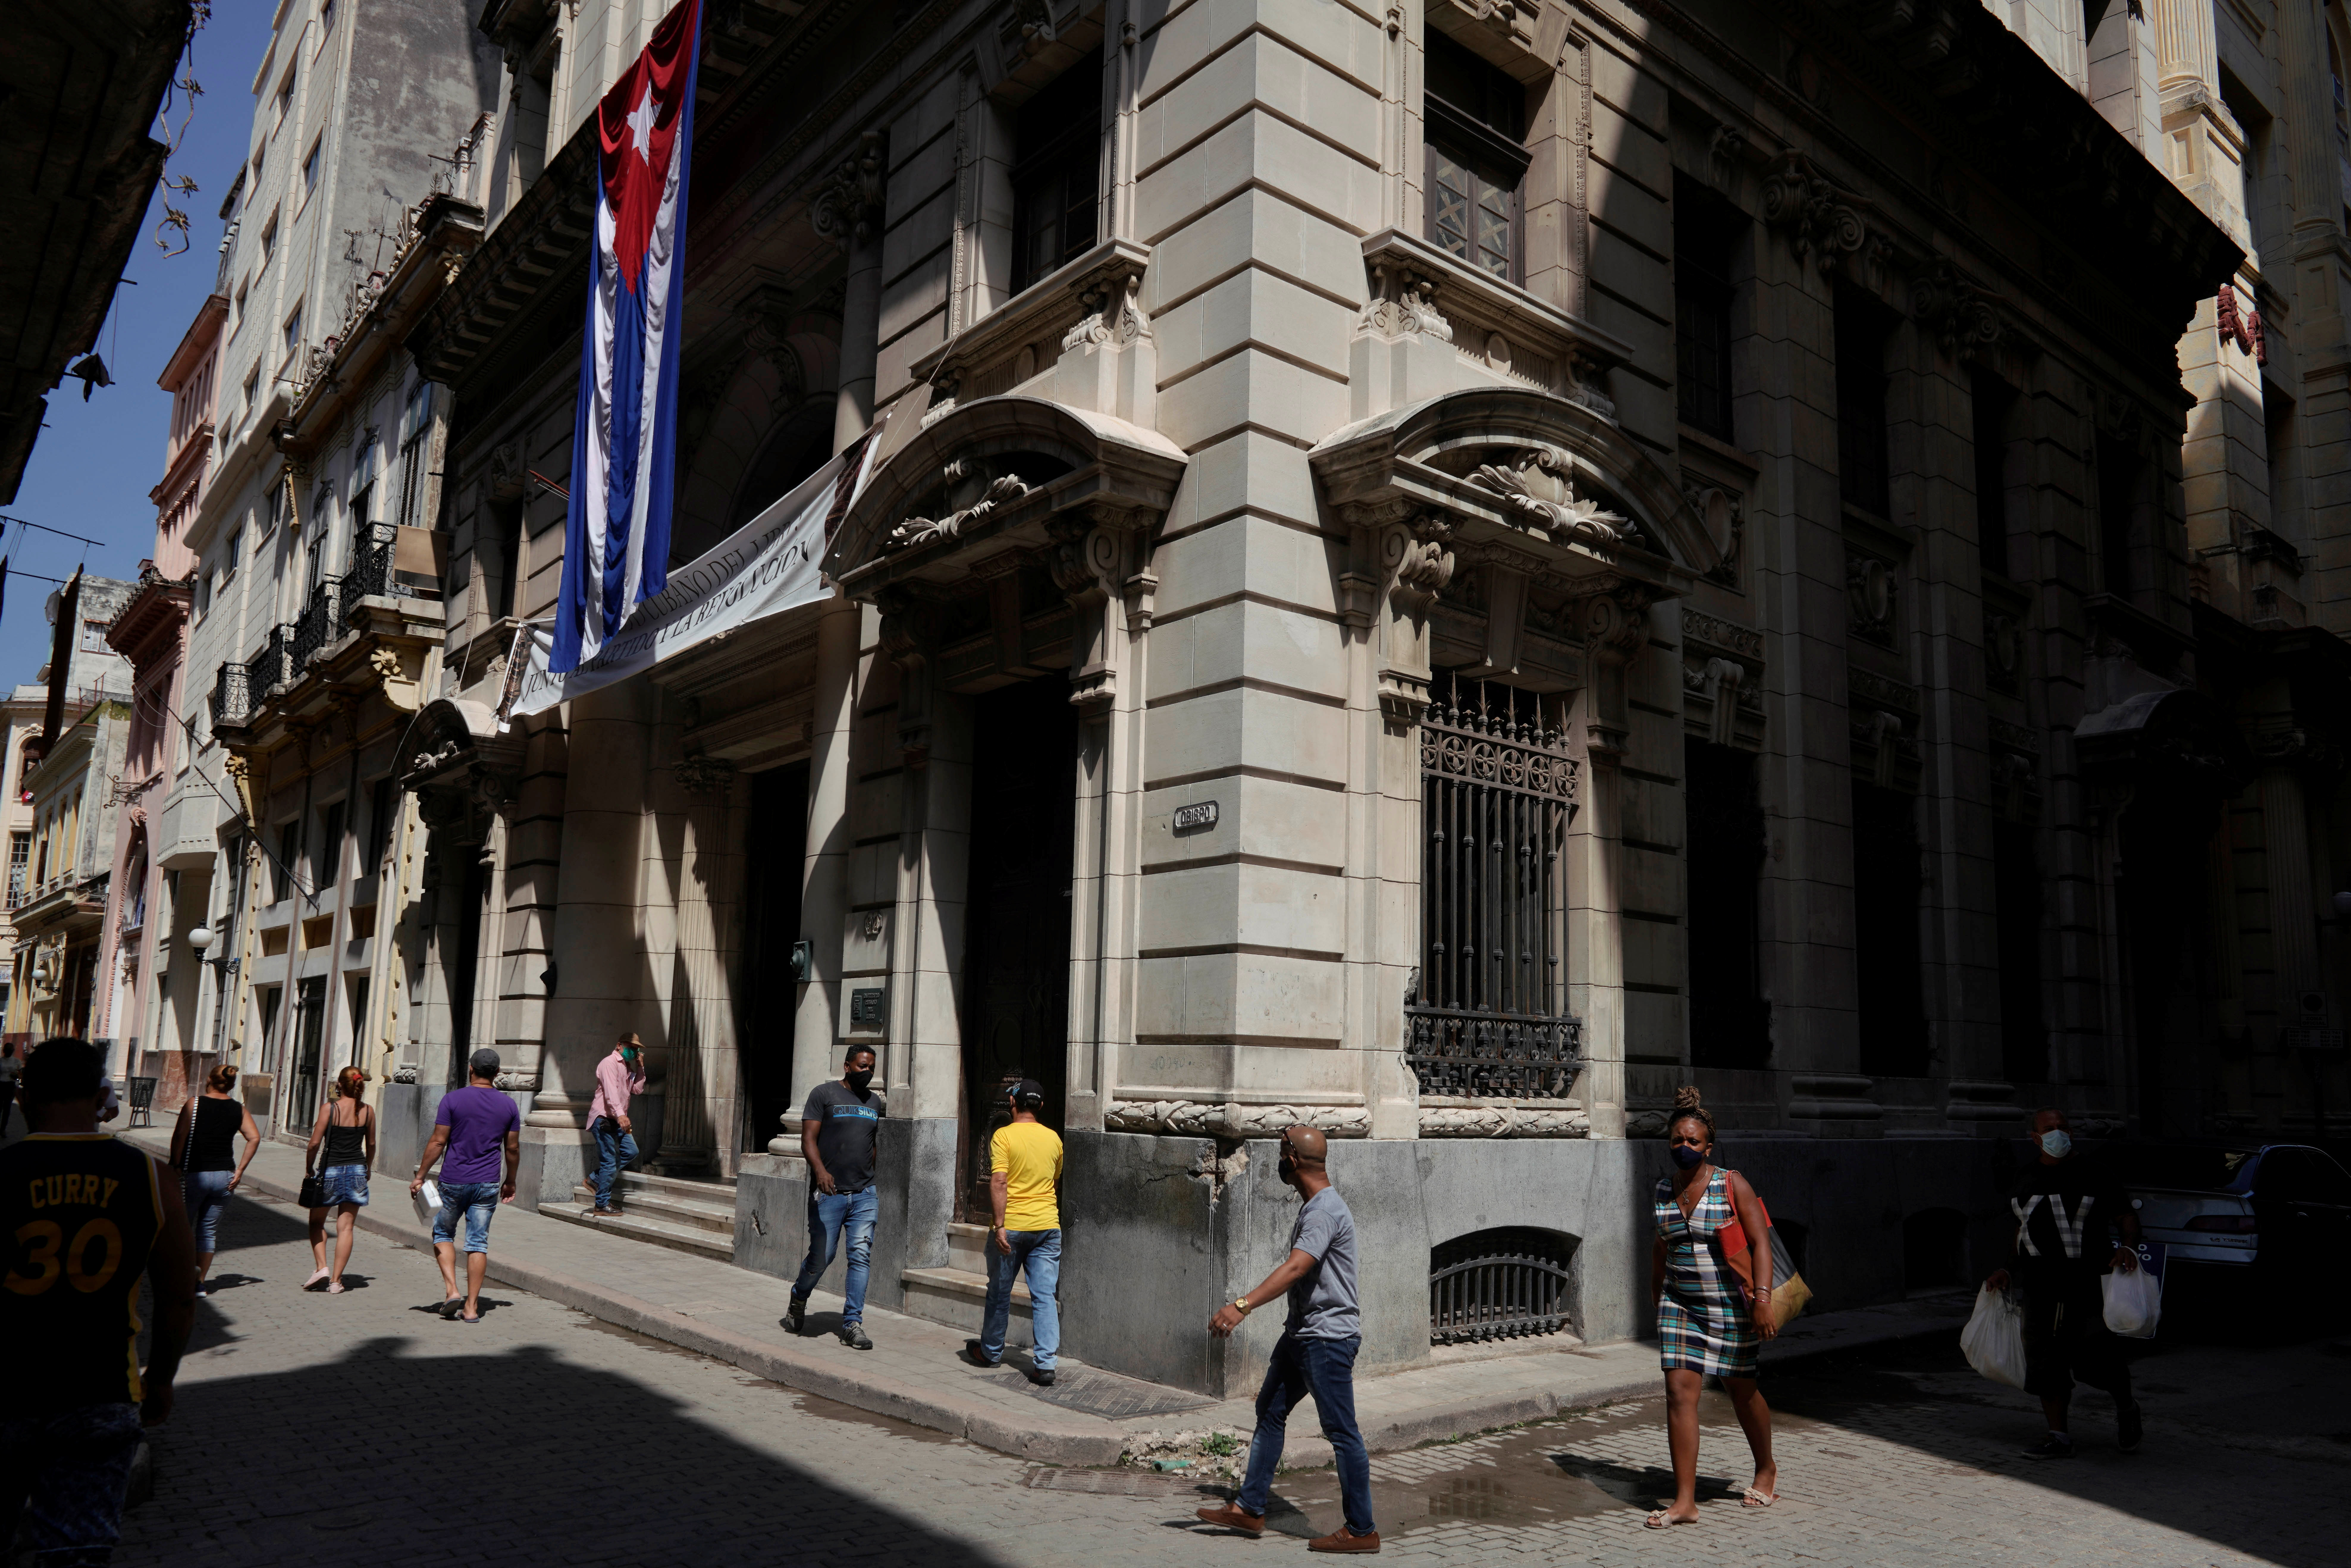 People walk under a Cuban flag at a commercial area in downtown Havana, Cuba, August 3, 2021. Photo taken on August 3, 2021. REUTERS/Alexandre Meneghini